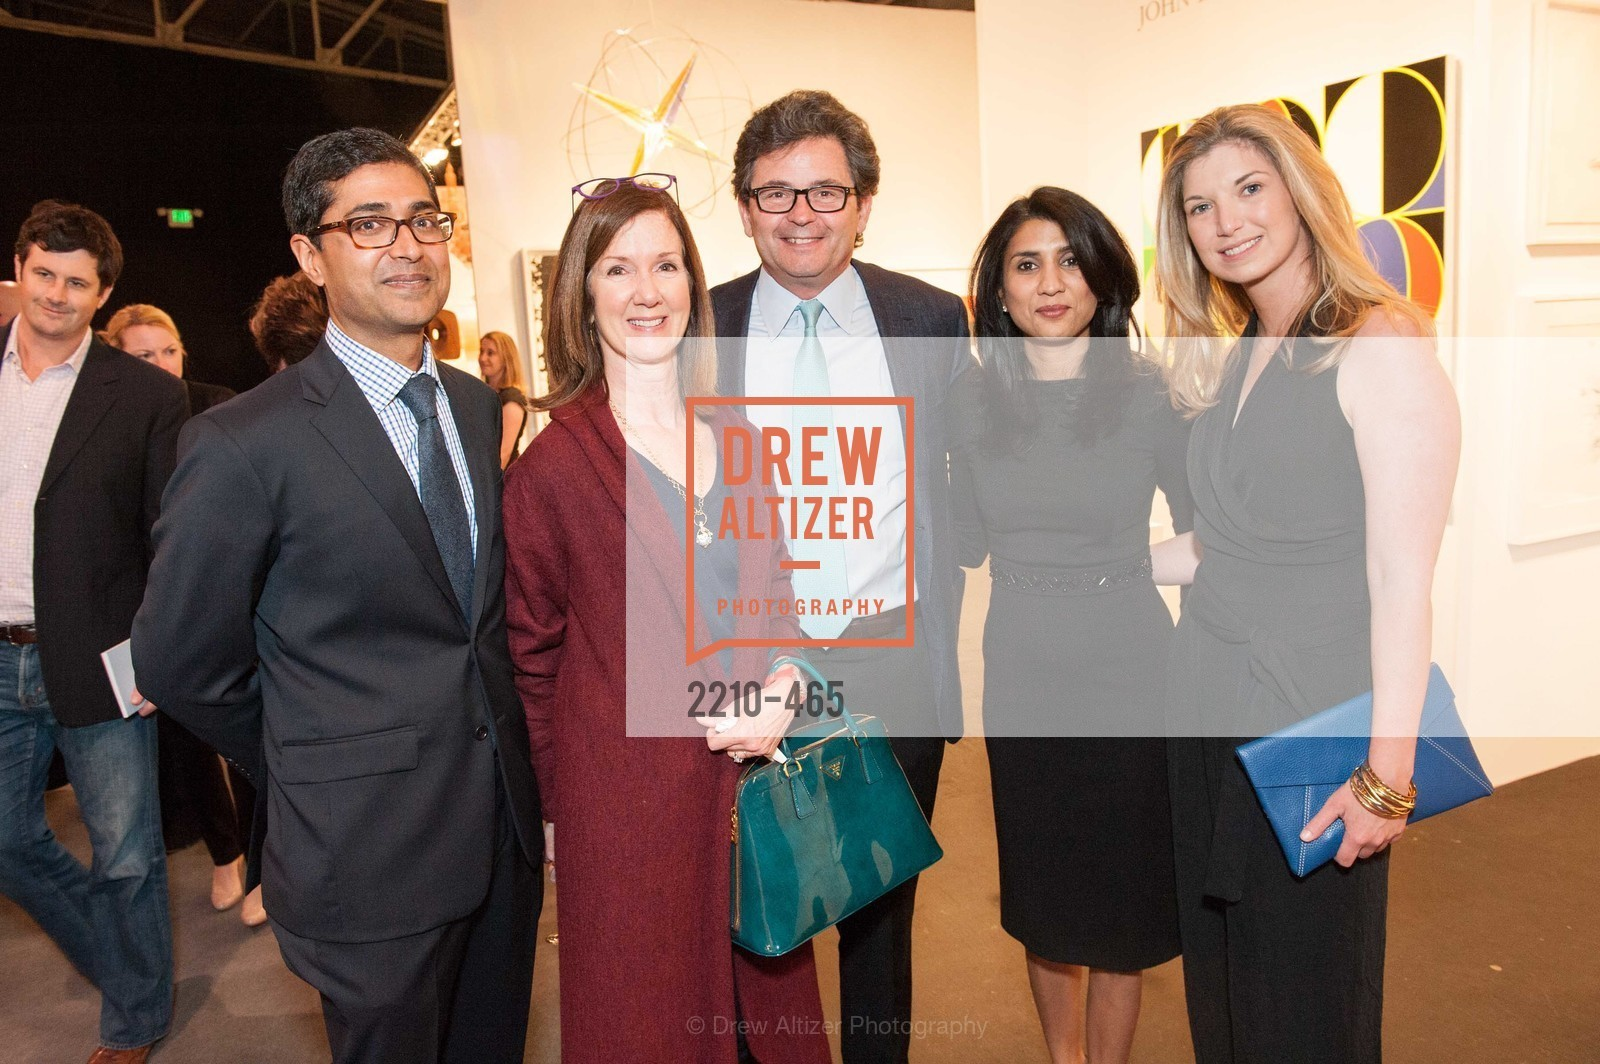 Ravin Agrawal, Frannie Allen, George Cogan, Alka Agrawal, Cameron Phleger, FOG Design + Art Preview Gala, US. US, January 16th, 2014,Drew Altizer, Drew Altizer Photography, full-service agency, private events, San Francisco photographer, photographer california